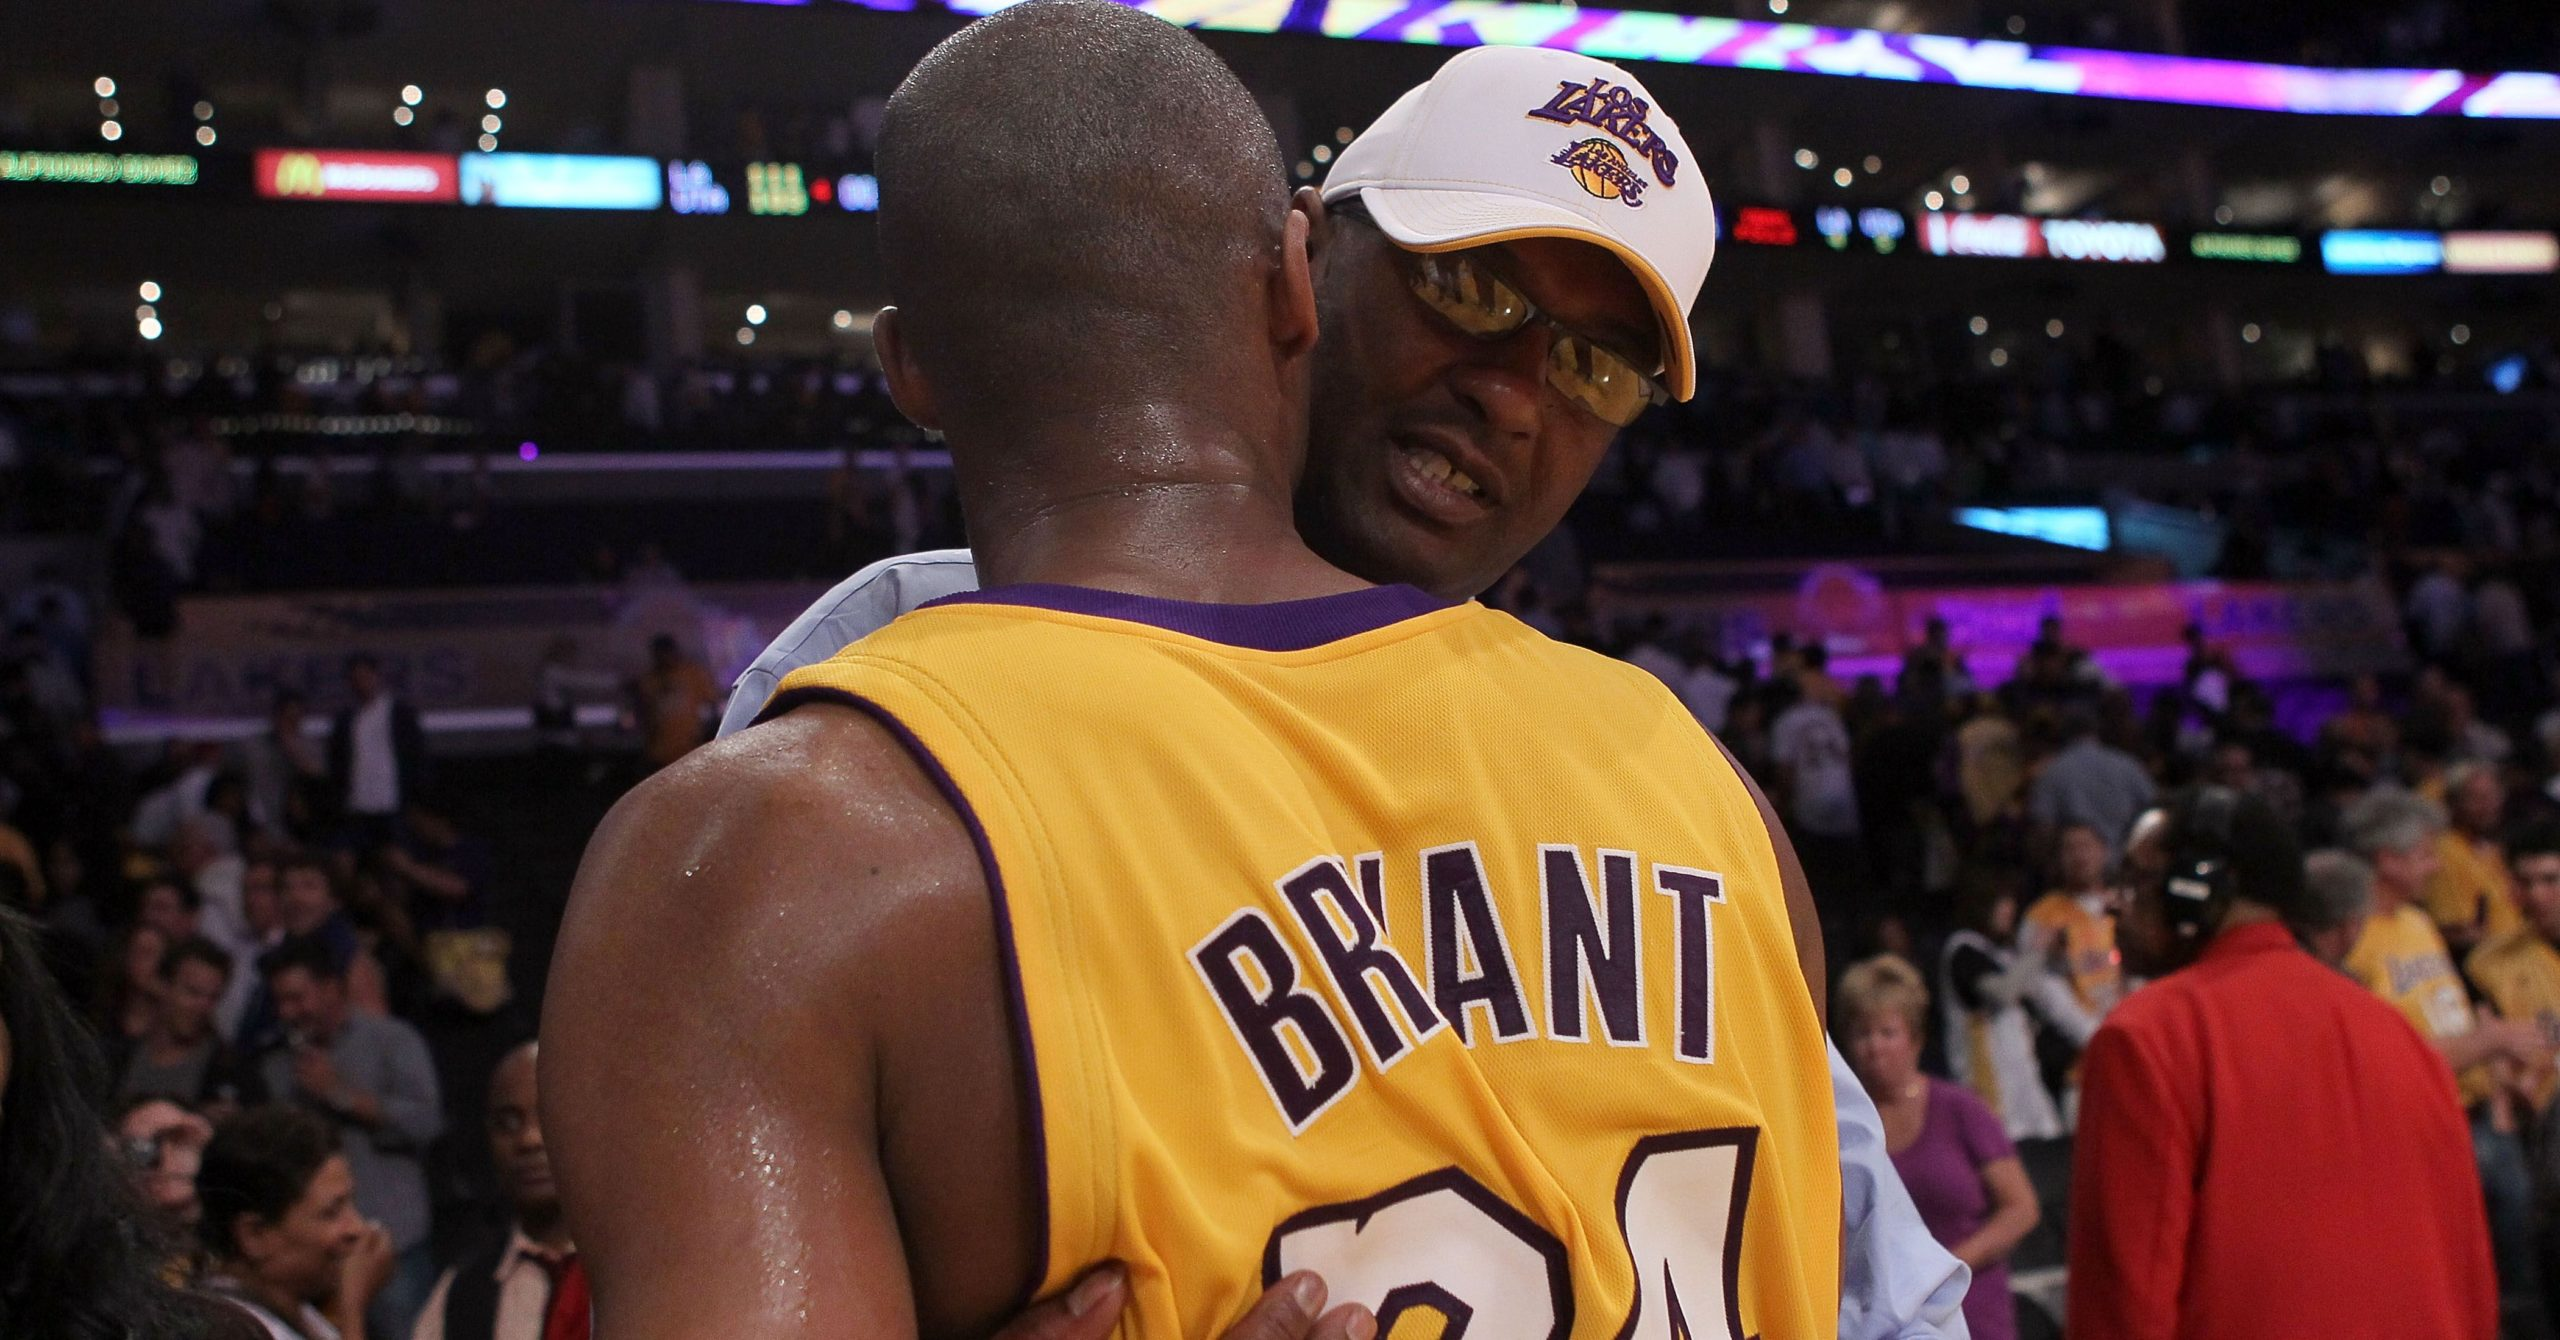 Joe Bryant hugging his son Kobe Bryant during a game